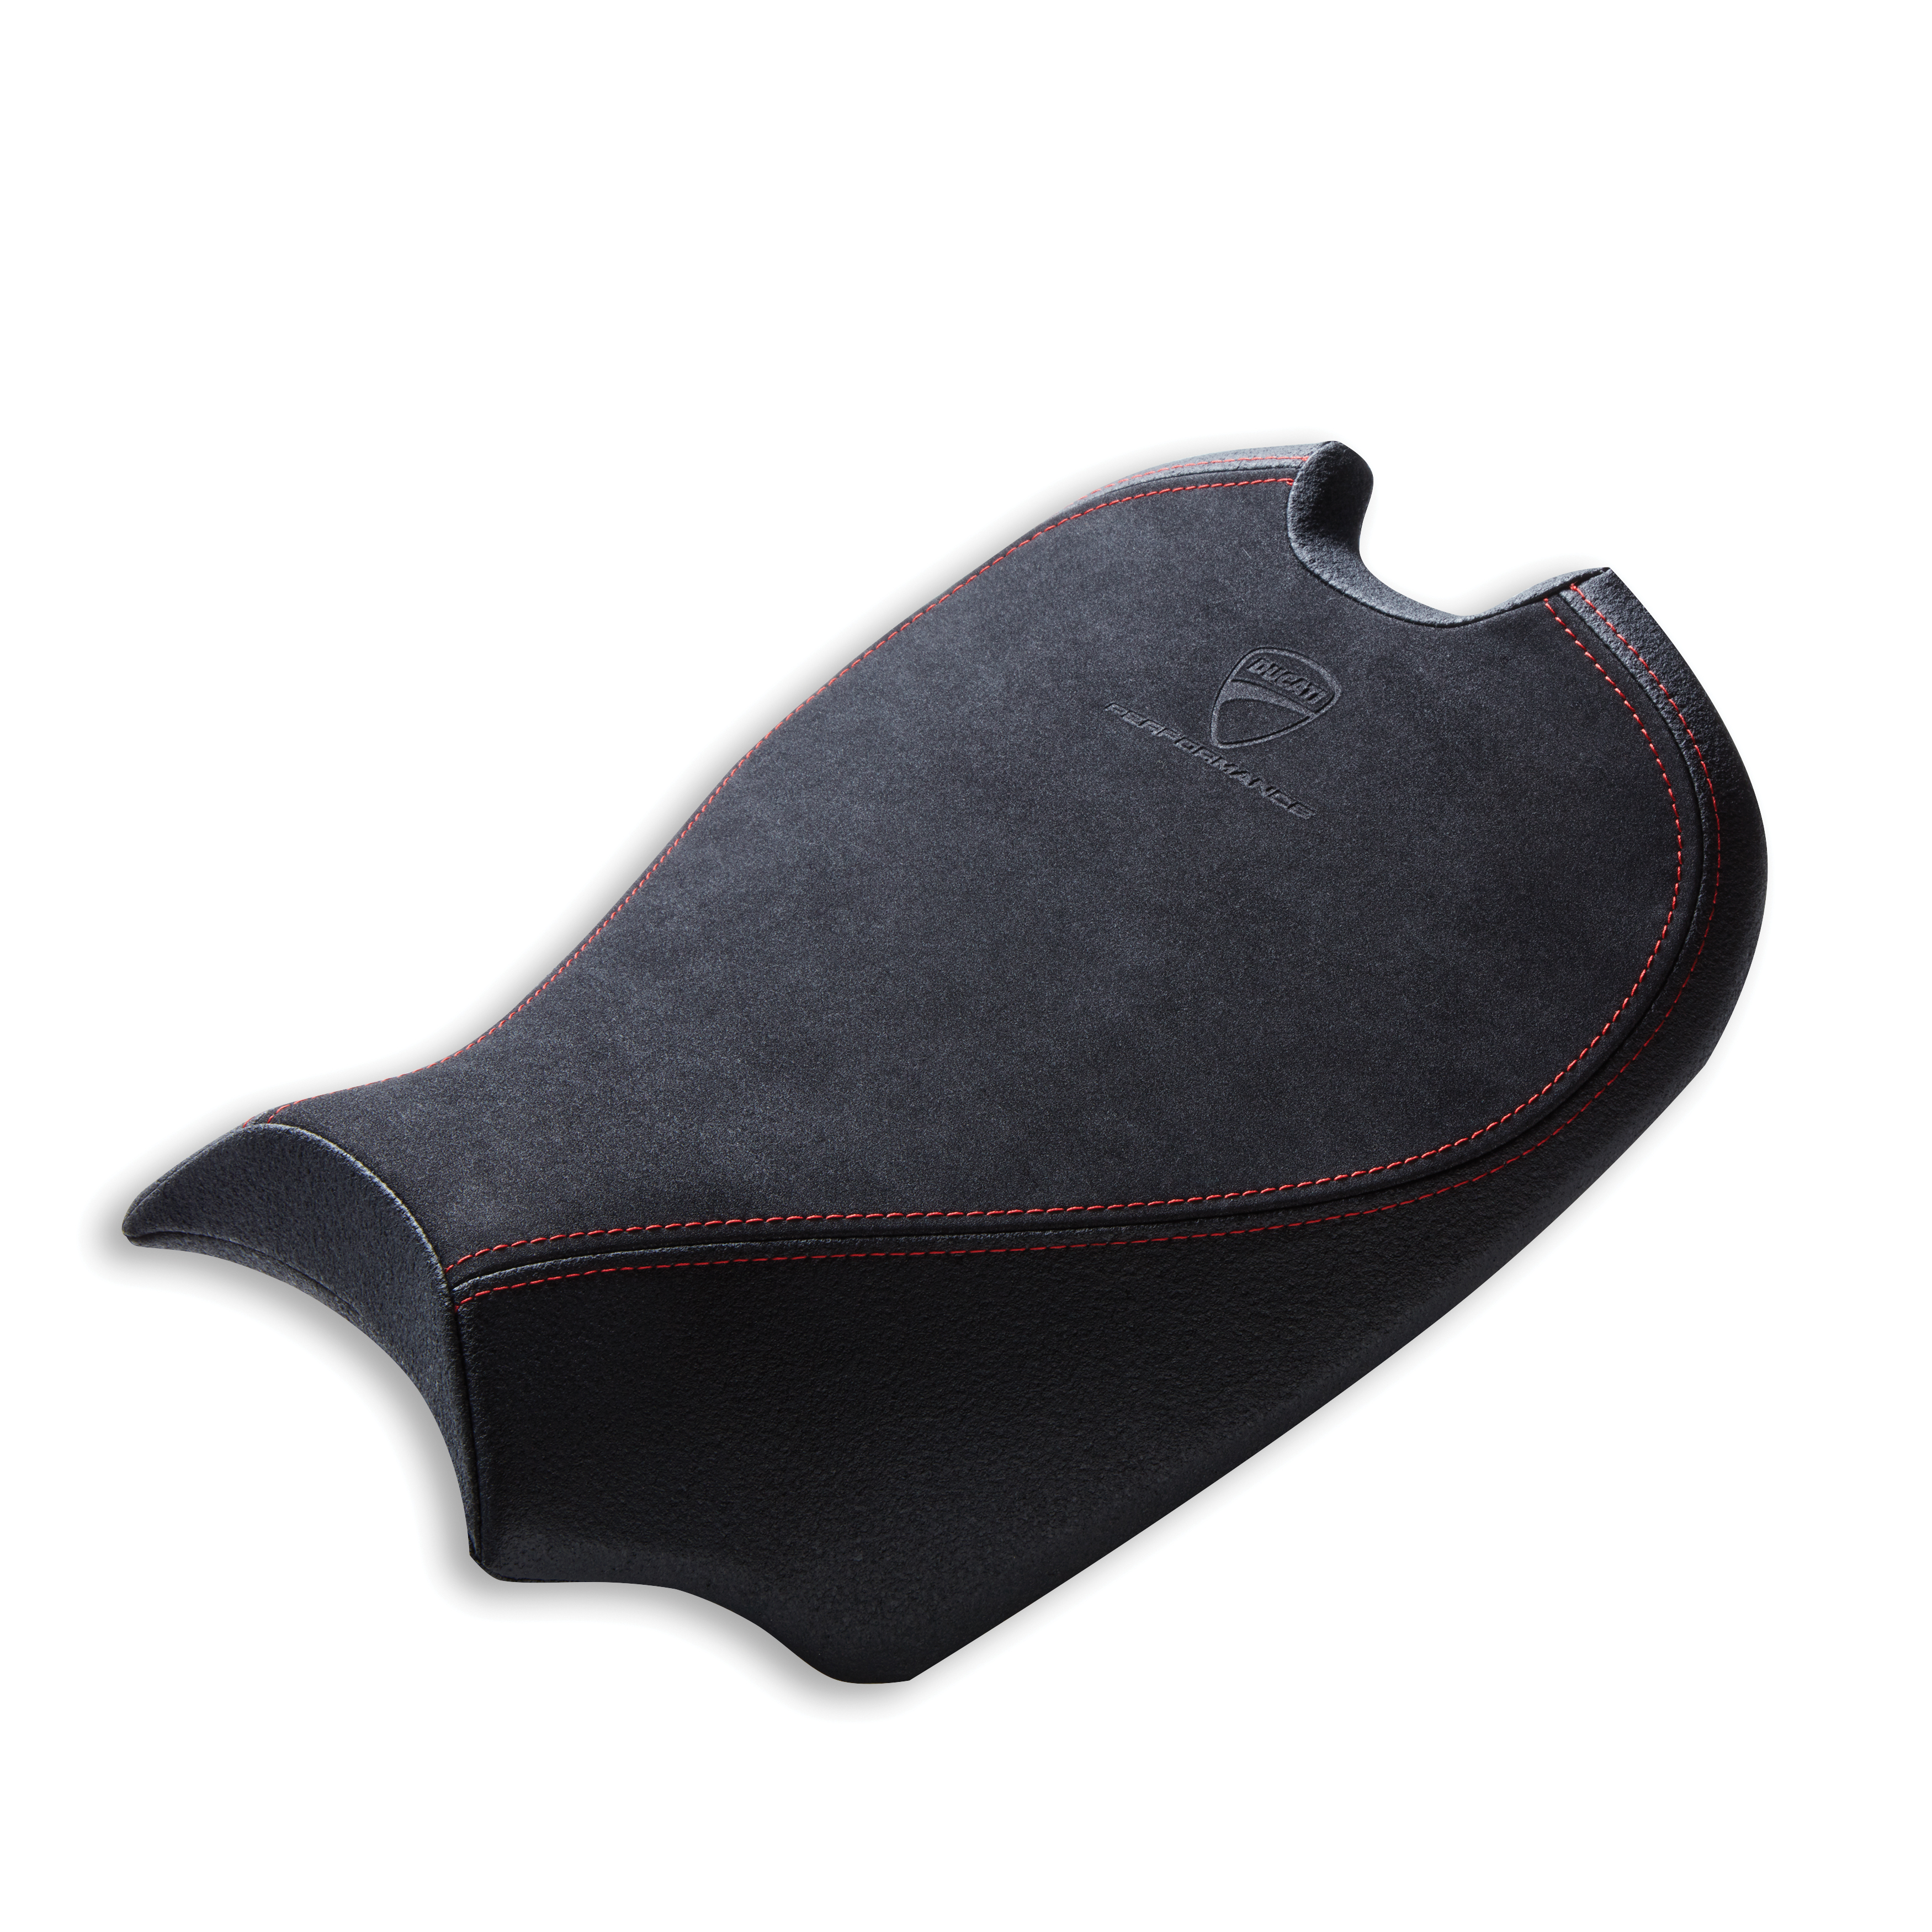 Racing seat in technical fabric.